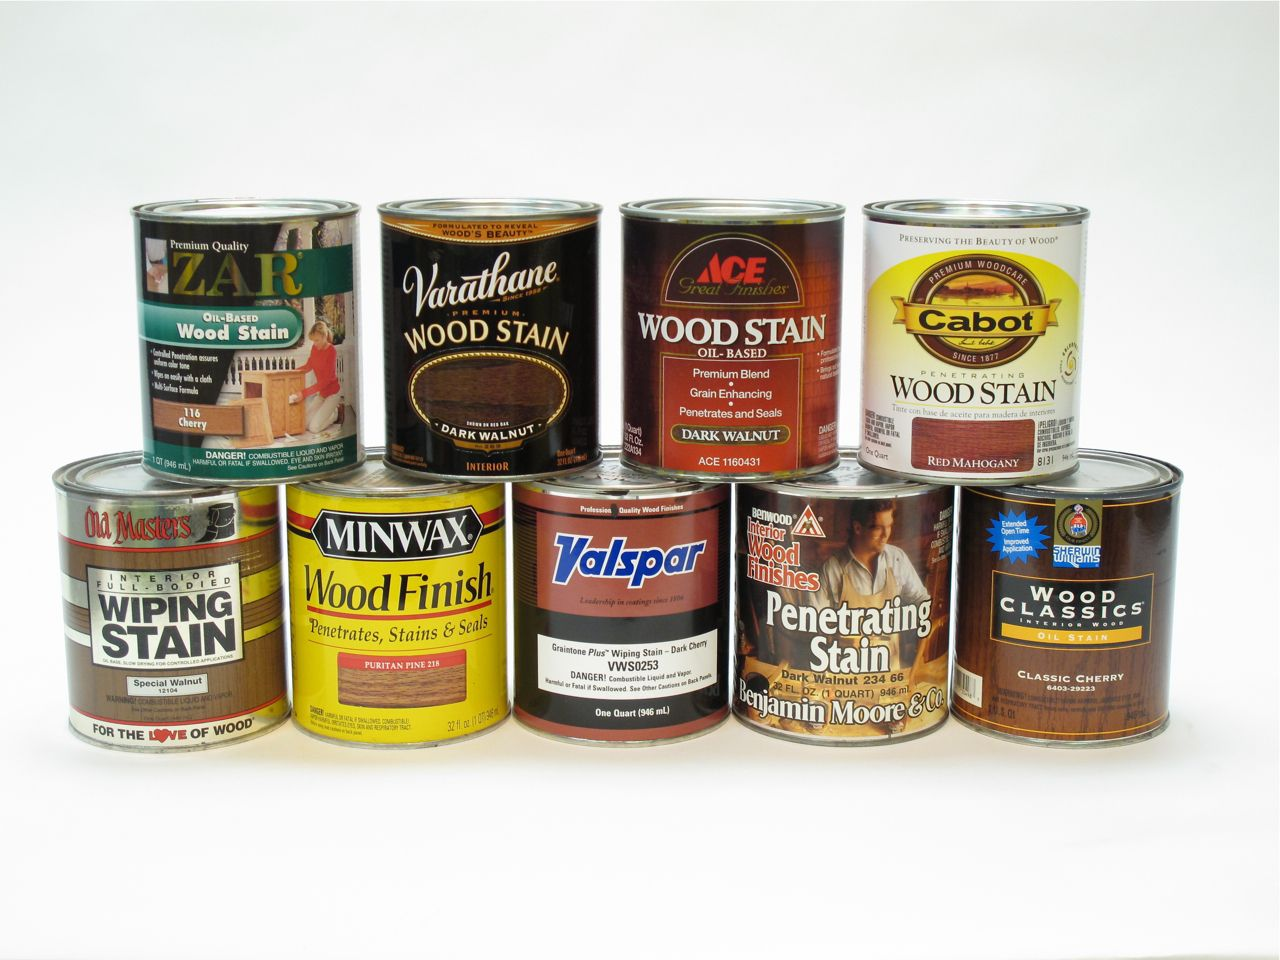 What S The Difference Between Stain And Finish And Why Do Some Companies Mislabel Their Stains Bob Fle Staining Wood Woodworking Magazine Popular Woodworking